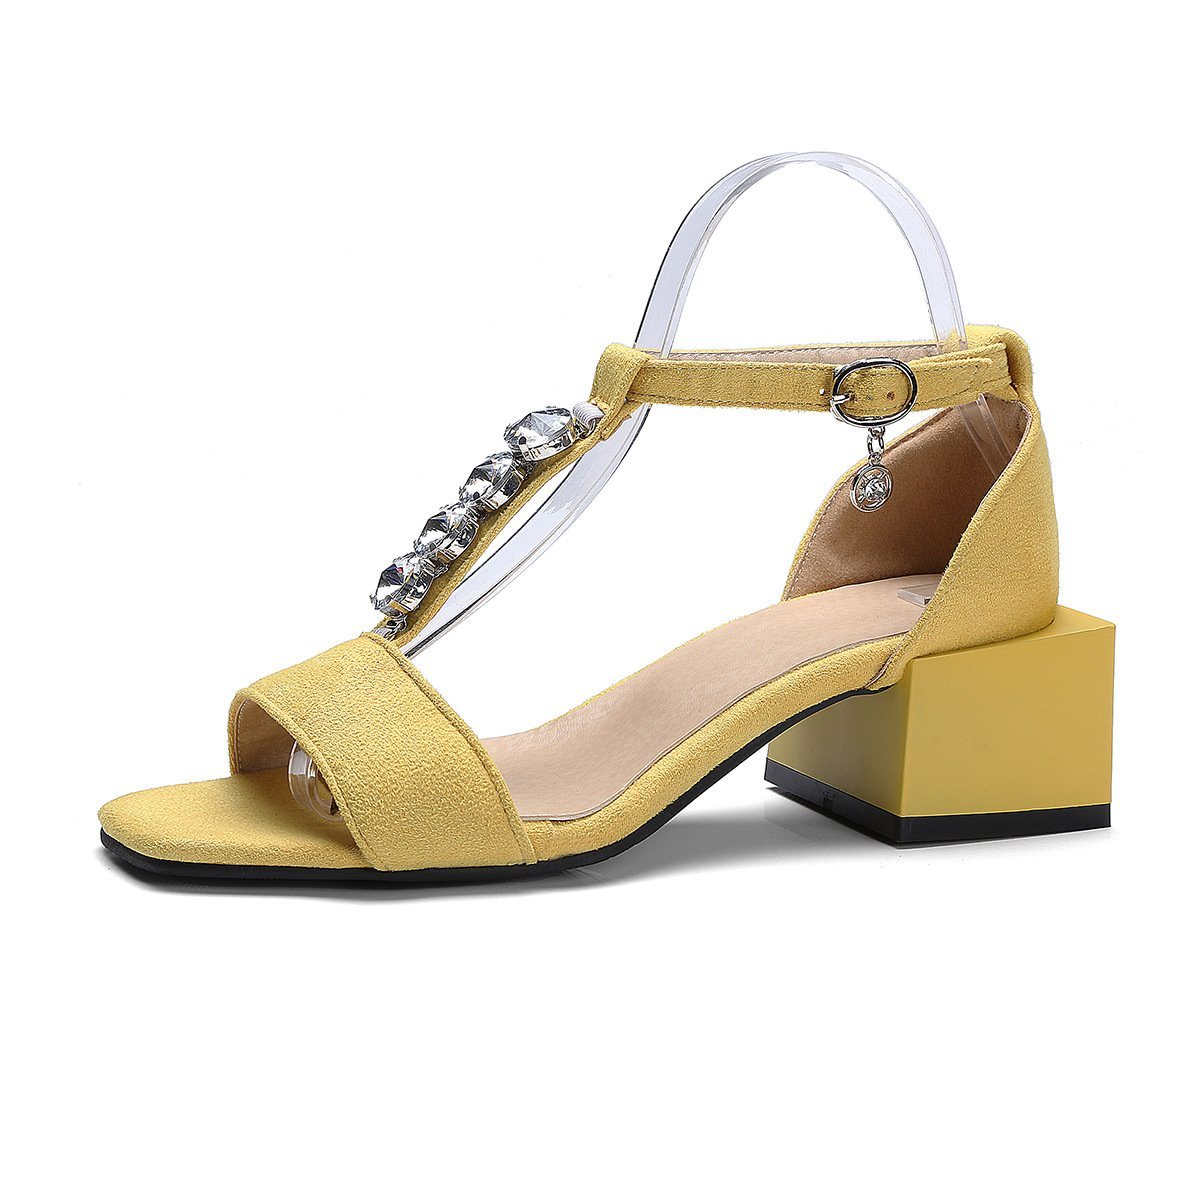 QIN&X Block der Frauen Yellow Heels Peep Toe Sandalen Yellow Frauen f9a0c4